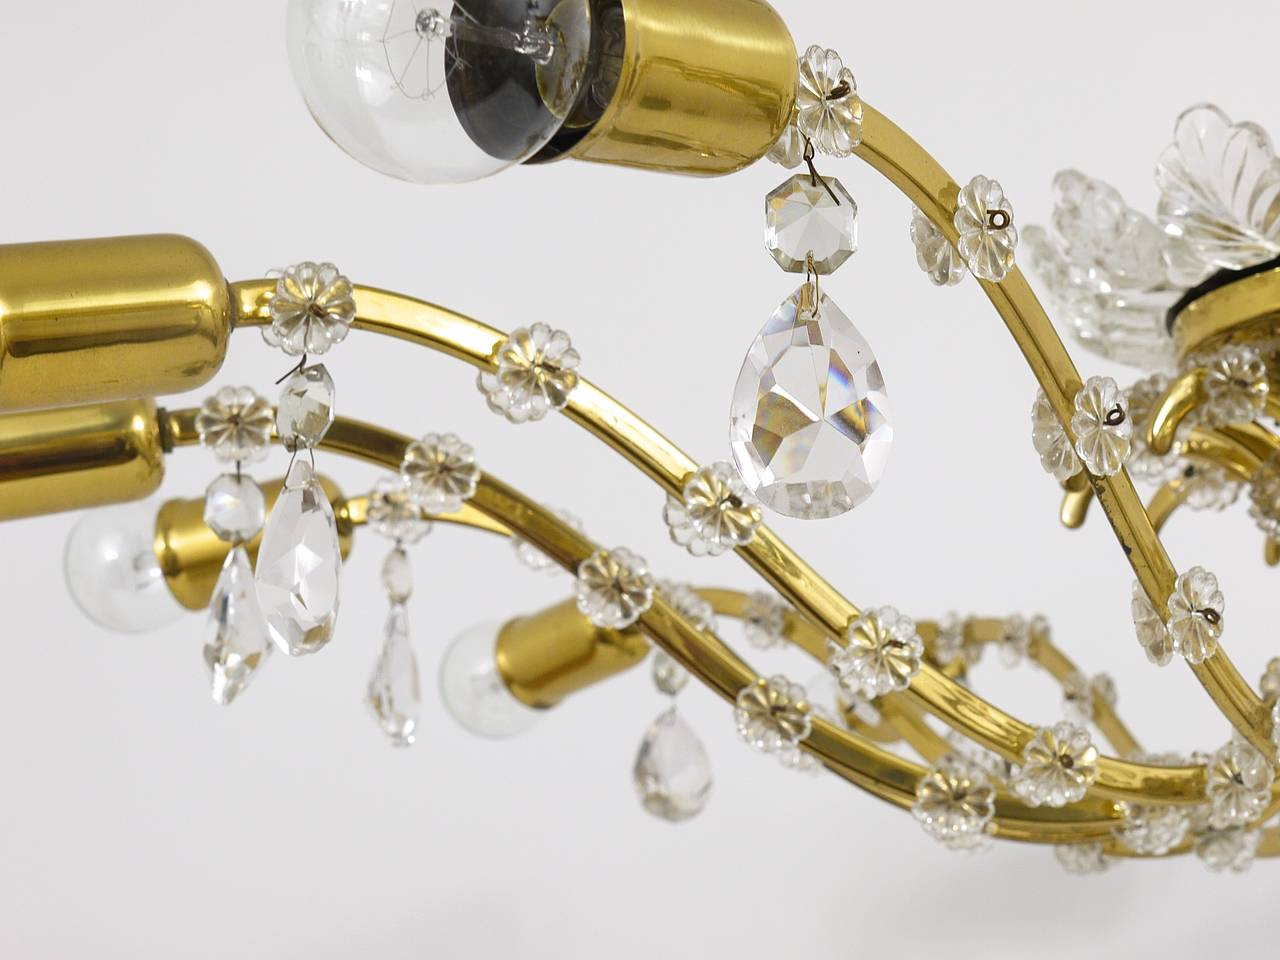 Huge Floral Lobmeyr Mid-Century Brass Crystal Chandelier, 1950s, Austria In Excellent Condition For Sale In Vienna, AT